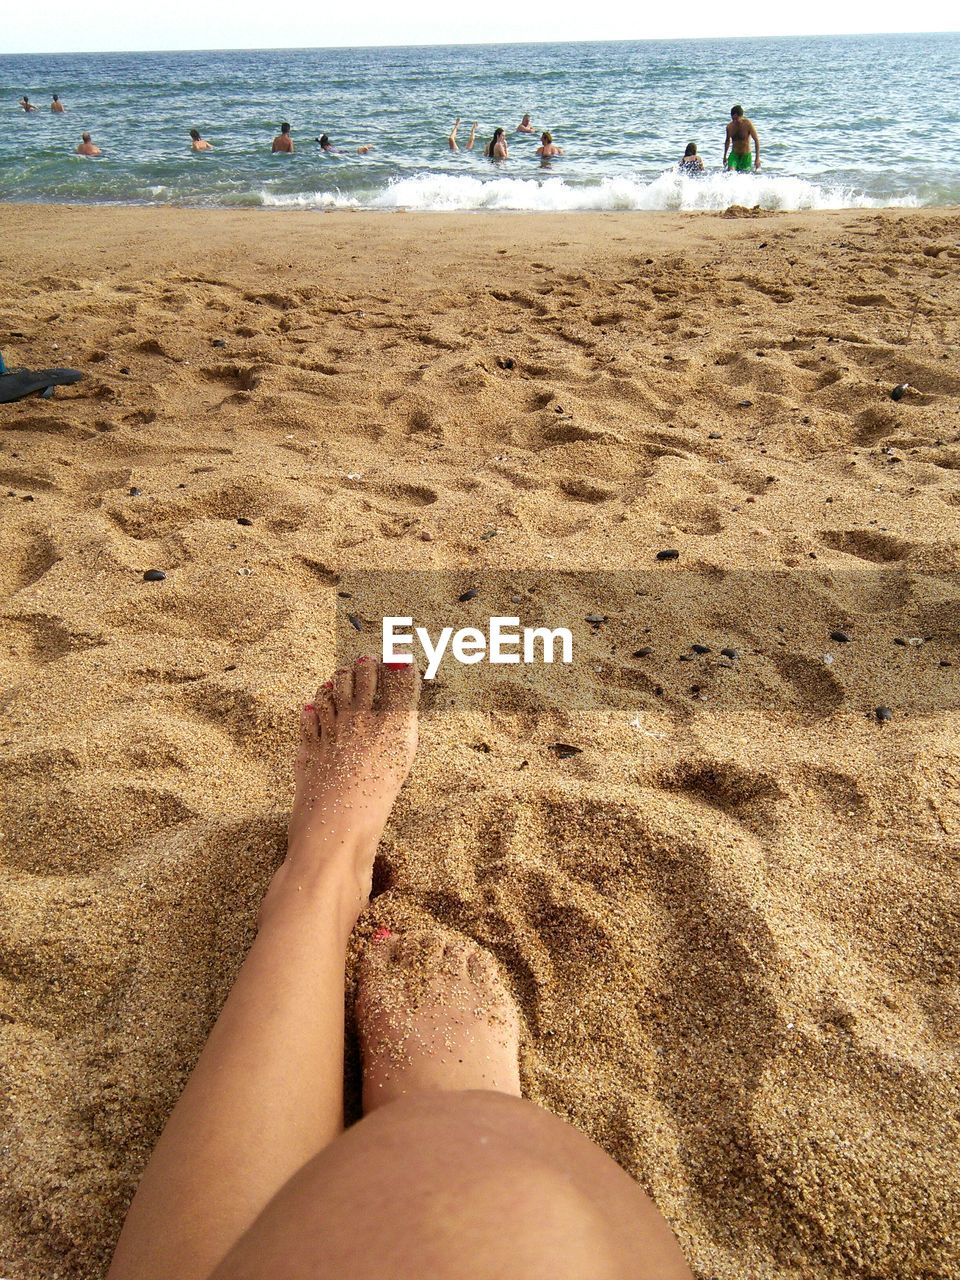 beach, sand, barefoot, sea, water, shore, human leg, real people, human body part, lifestyles, vacations, leisure activity, low section, day, summer, outdoors, women, nature, one person, wave, sky, people, adult, adults only